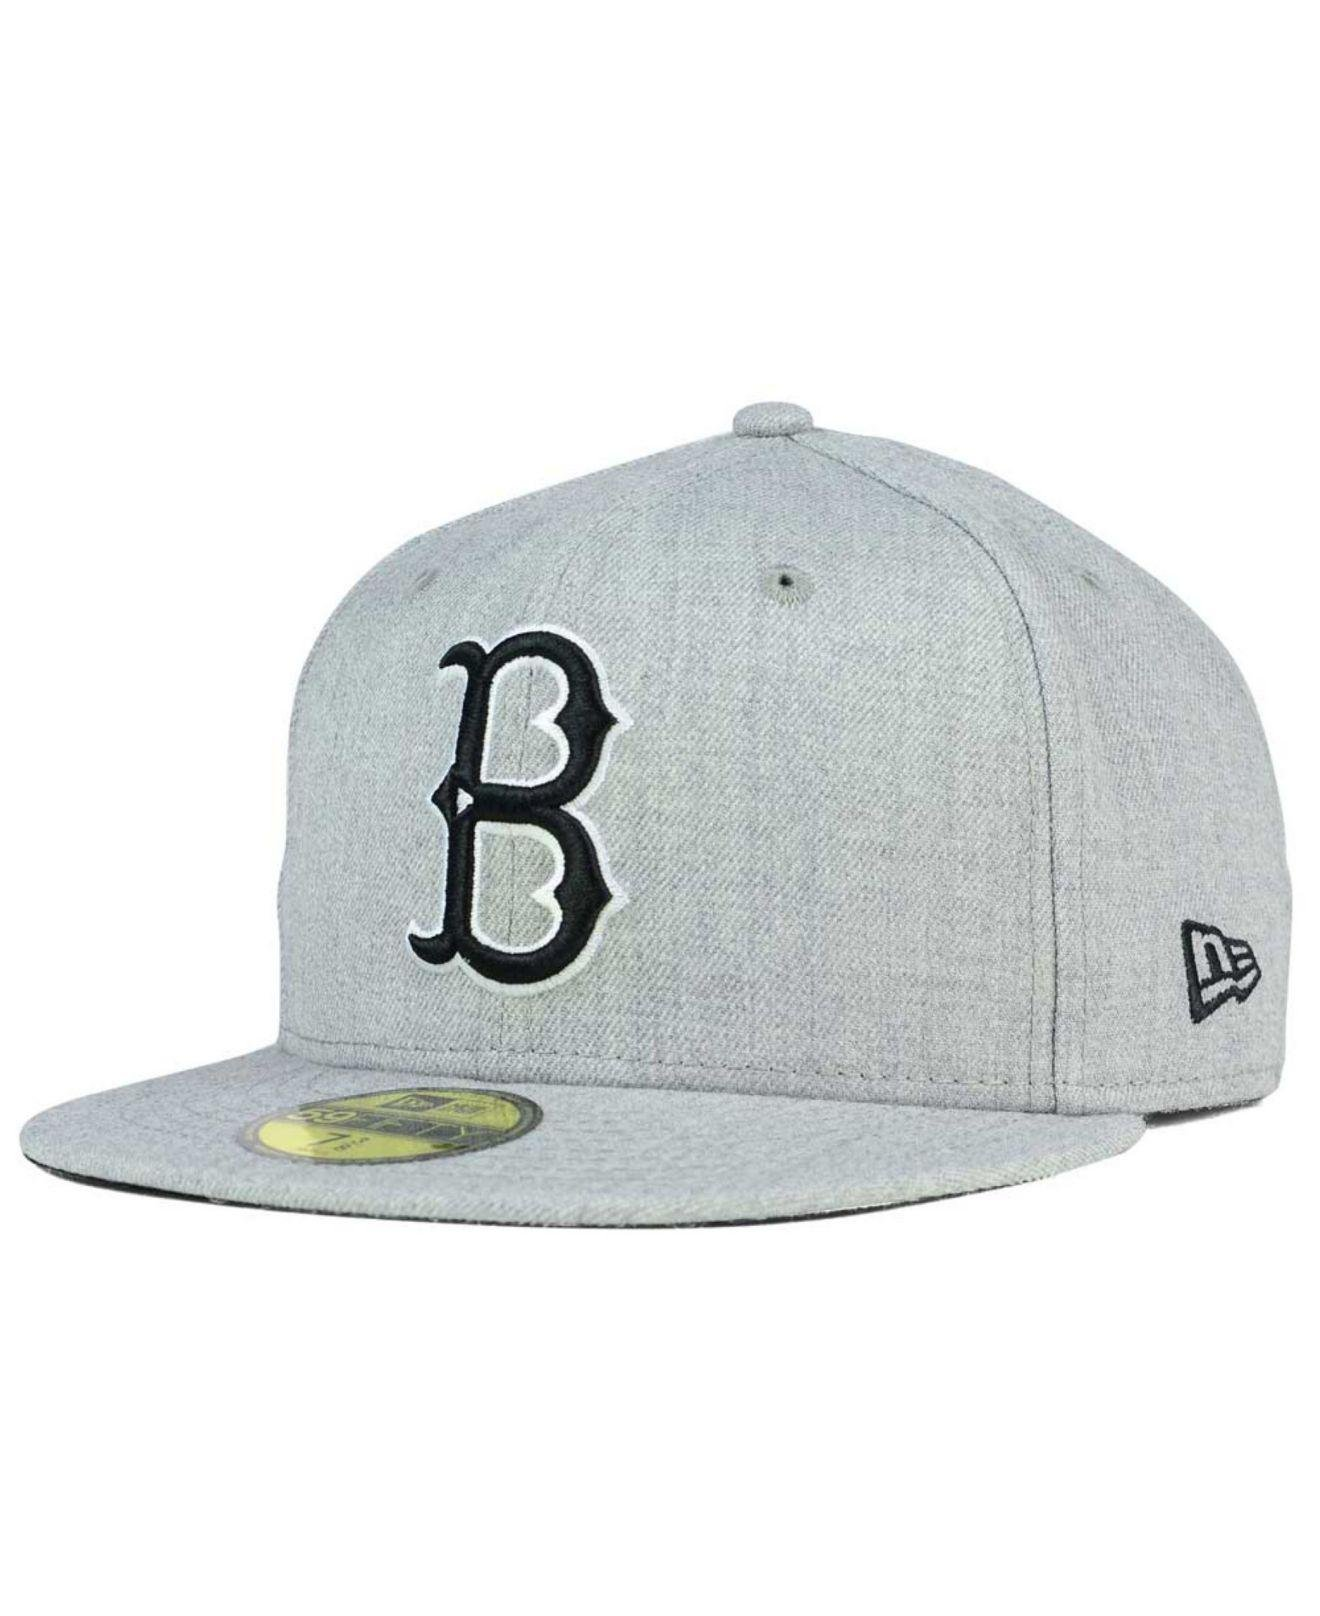 4d61ee9ef406e KTZ Brooklyn Dodgers Heather Black White 59fifty Cap in Gray for Men ...